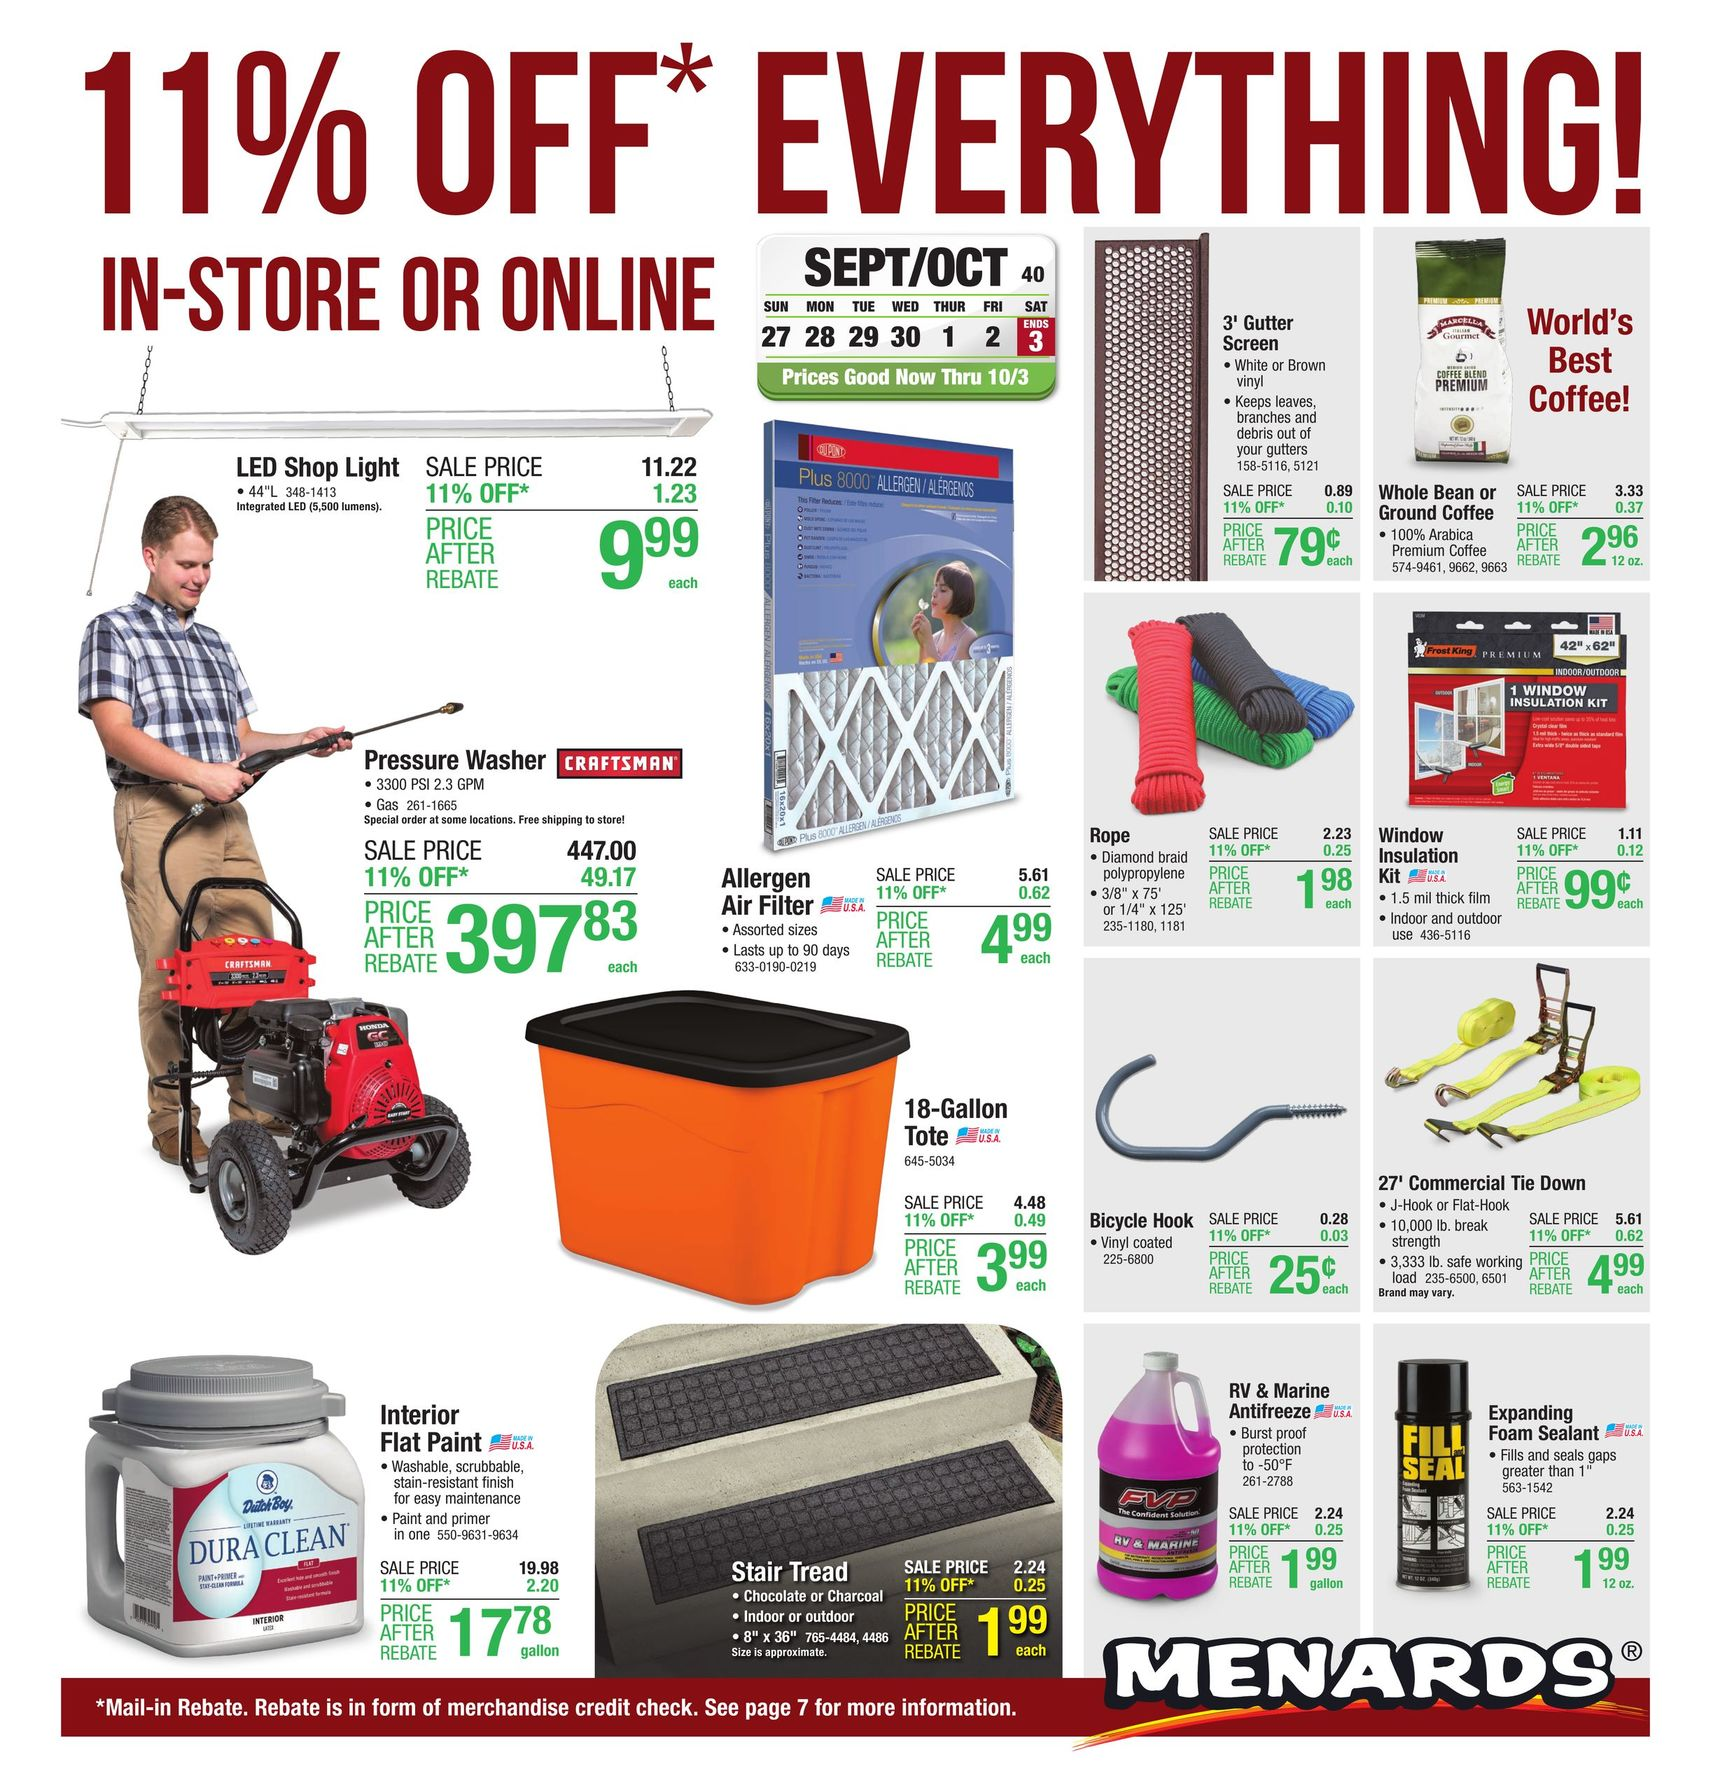 Menards Ad Deals September 27 - October 3, 2020. 11% Rebate Sale!